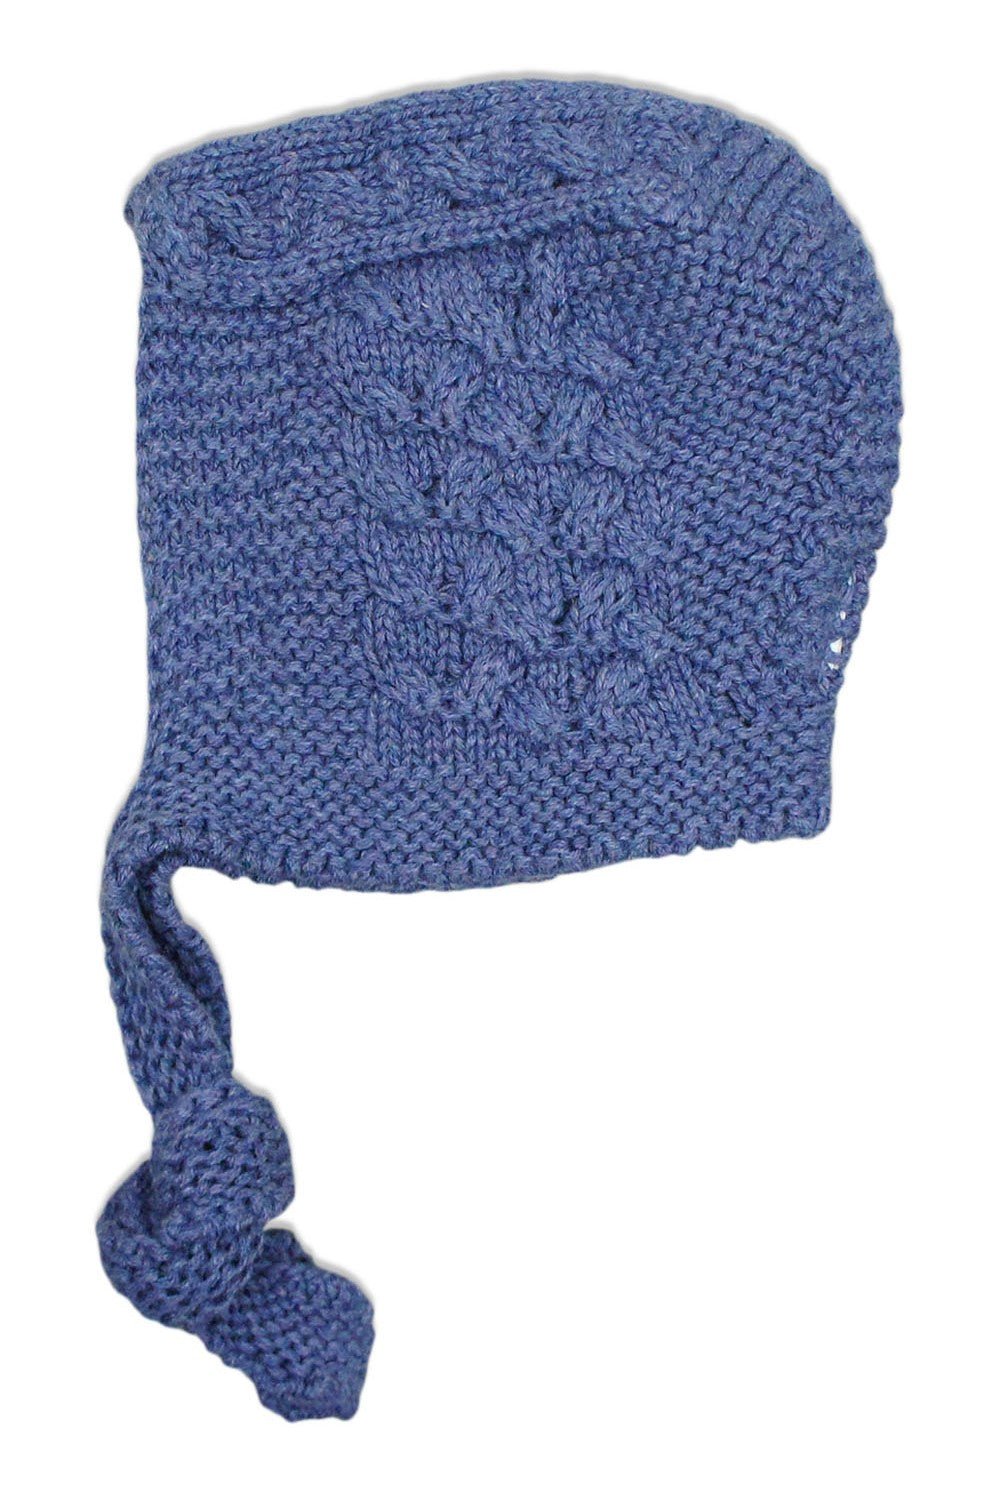 Nueces Dusty Blue Braid Bonnet